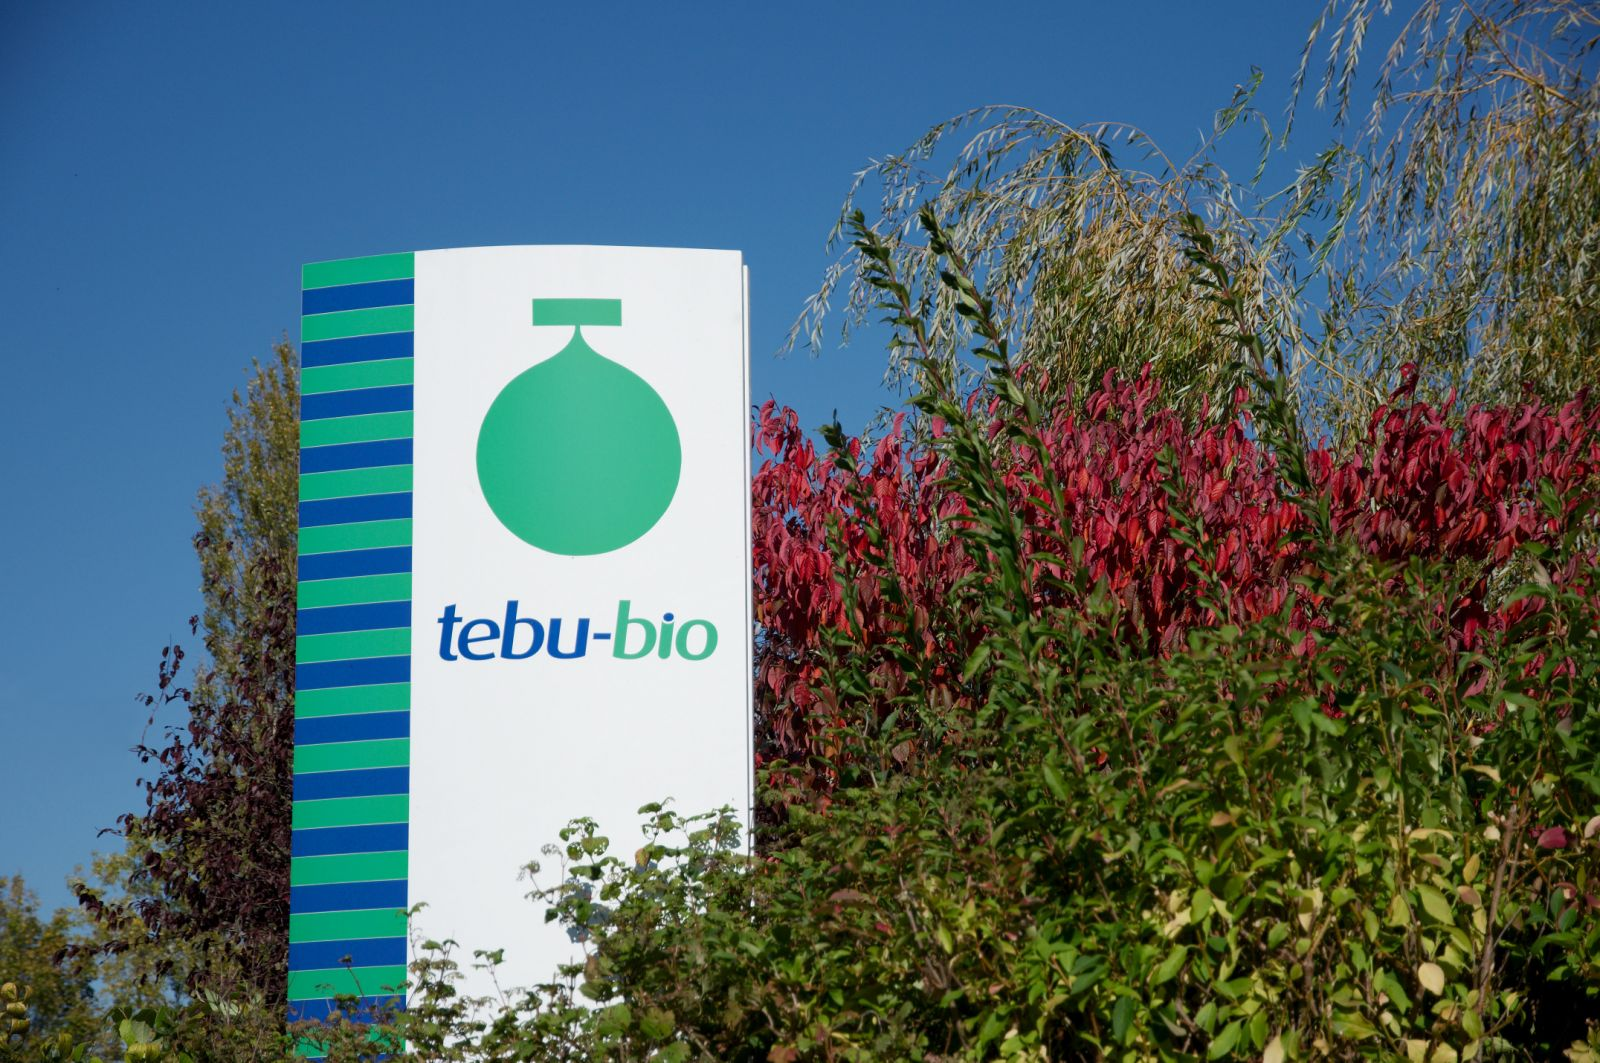 tebu-bio offices throughout Europe